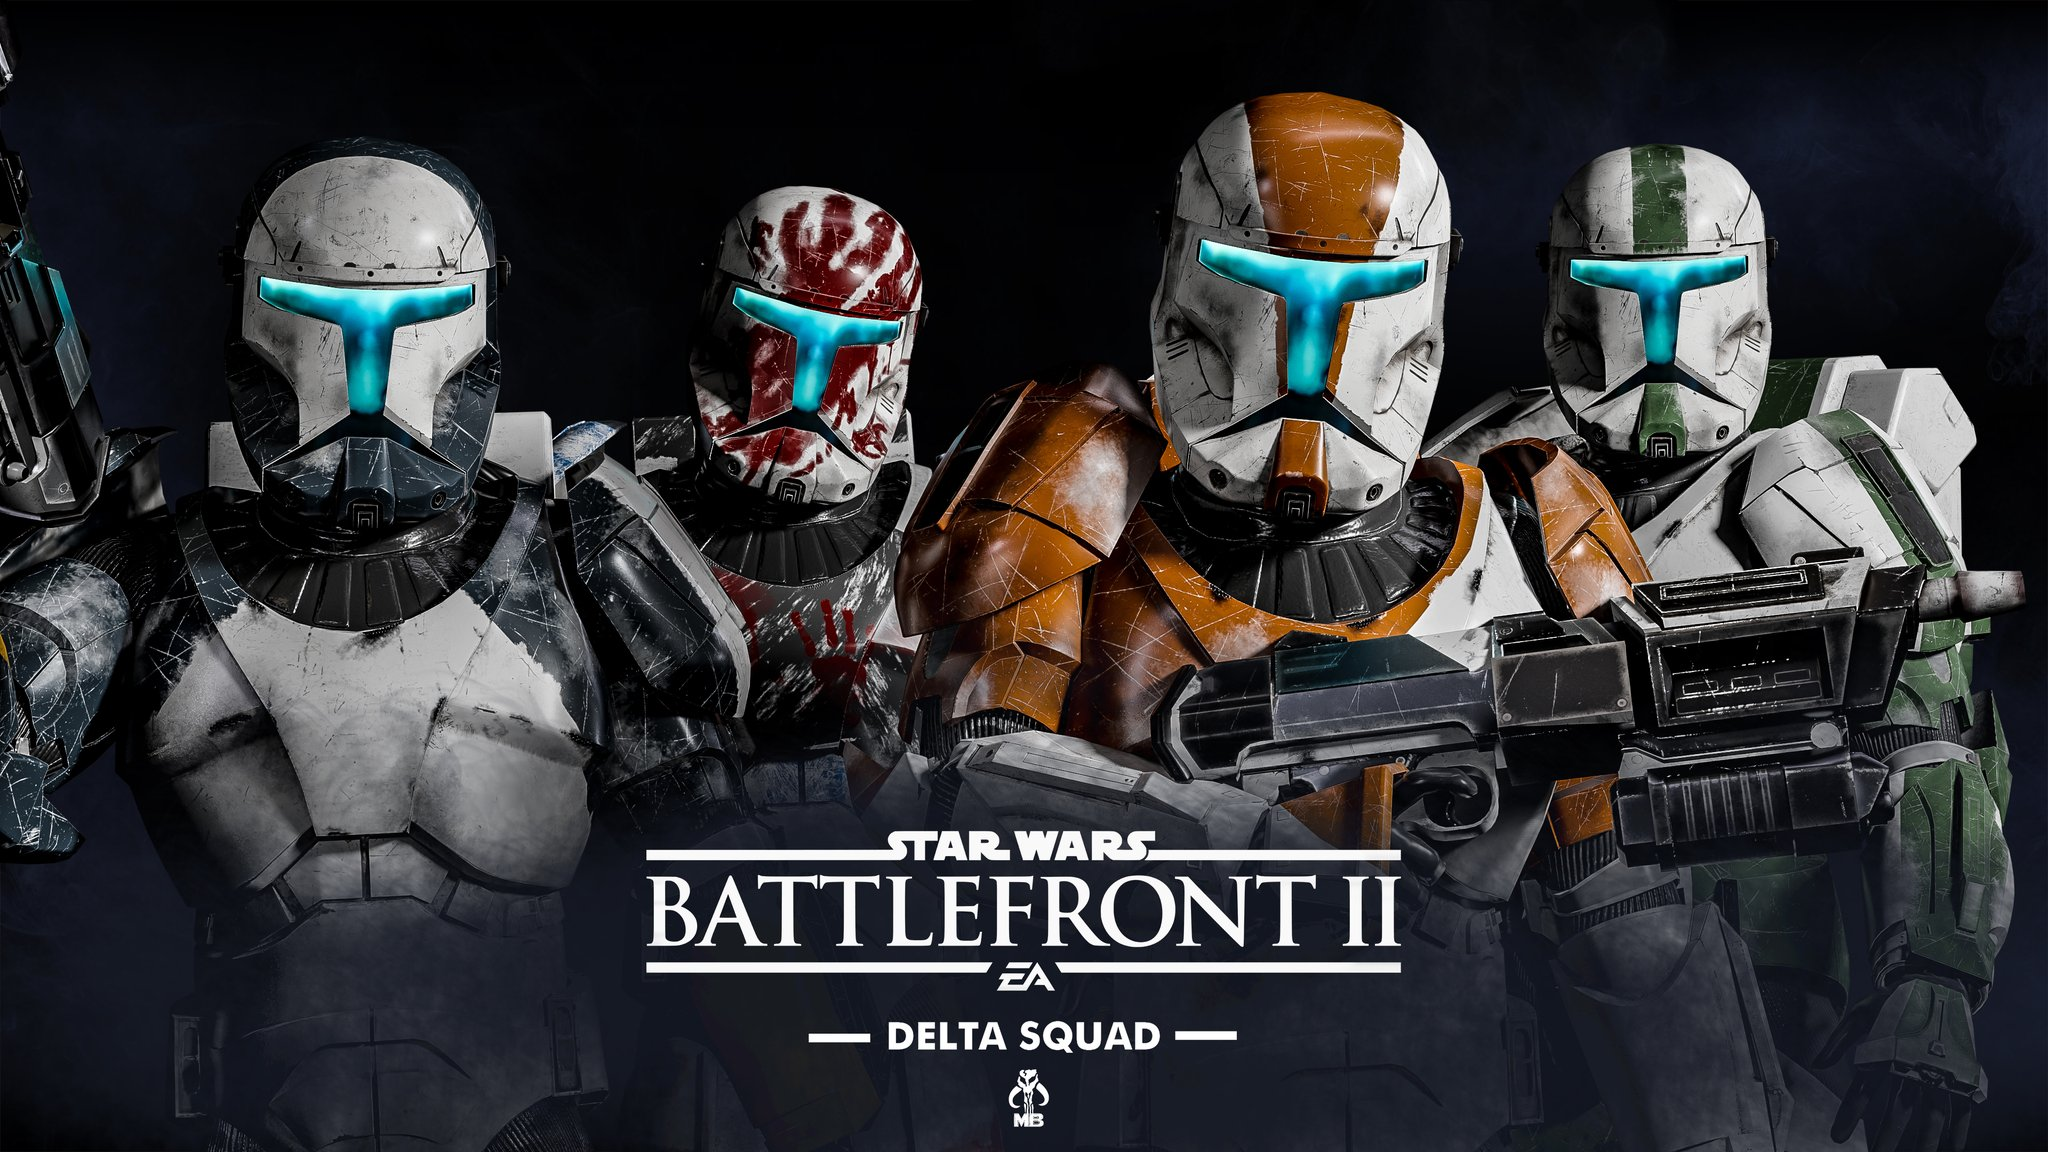 Daily Battlefront On Twitter New Content New Mods Clone Commando Delta Squad By Mandobusiness Download Here Https T Co Ihqmv5exxt